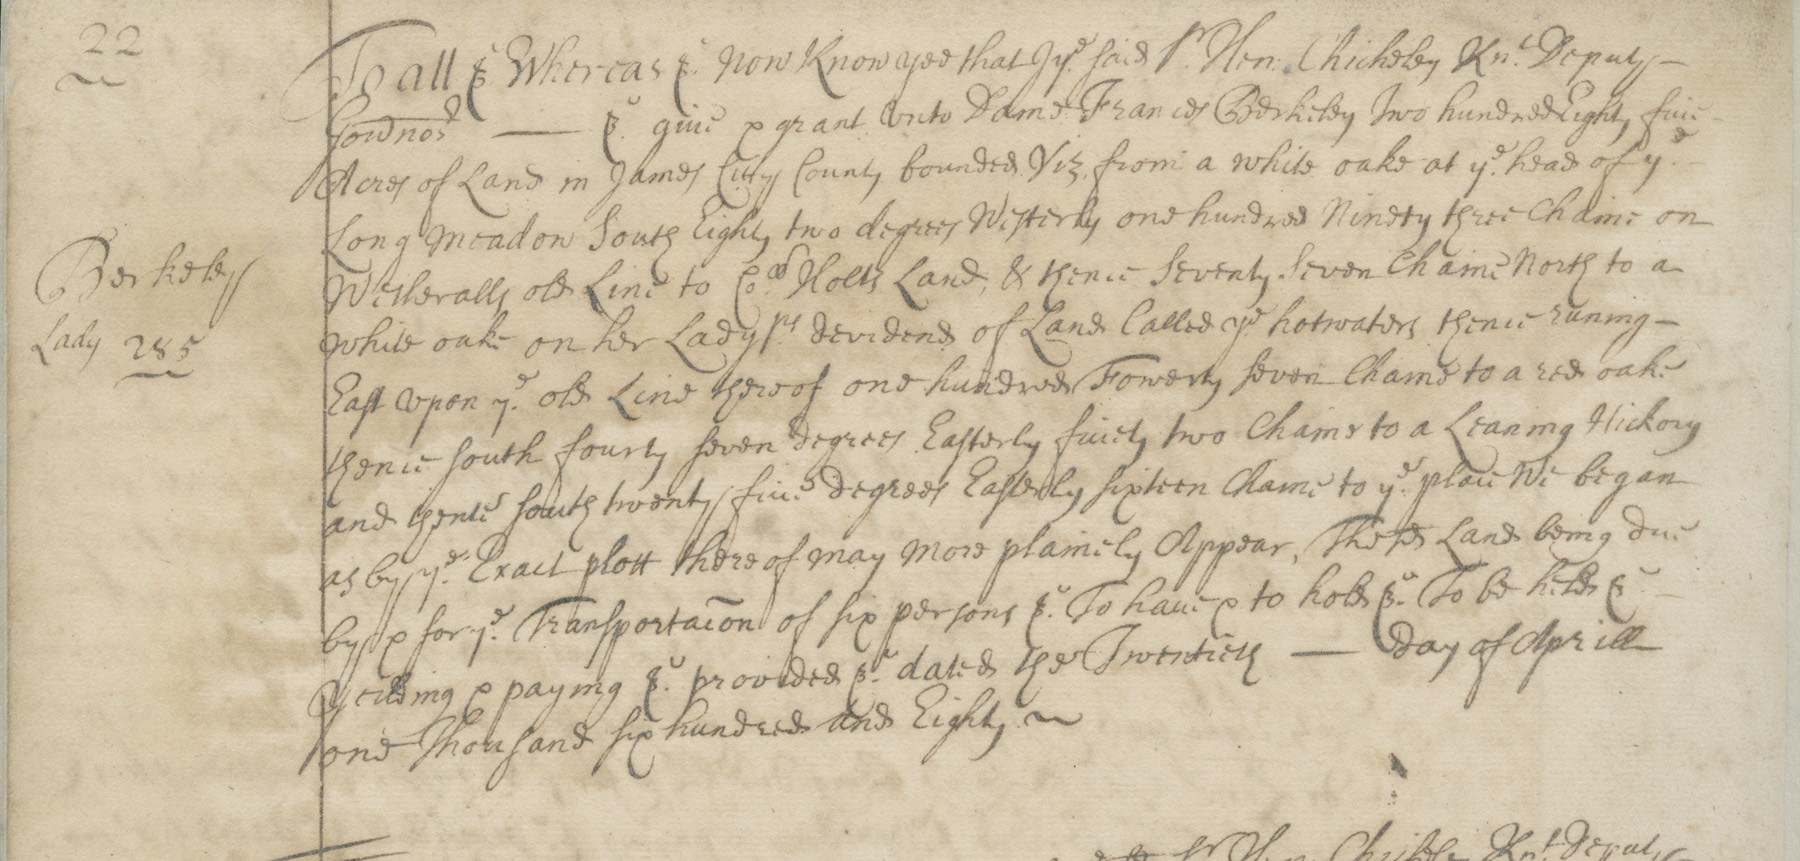 1680 grant of 285 acres in James City County to Frances, Lady Berkeley for paying to transport 6 people to Virginia, in Land Patent Book 7, p. 22, Land Office Records. Image courtesy of the Library of Virginia.